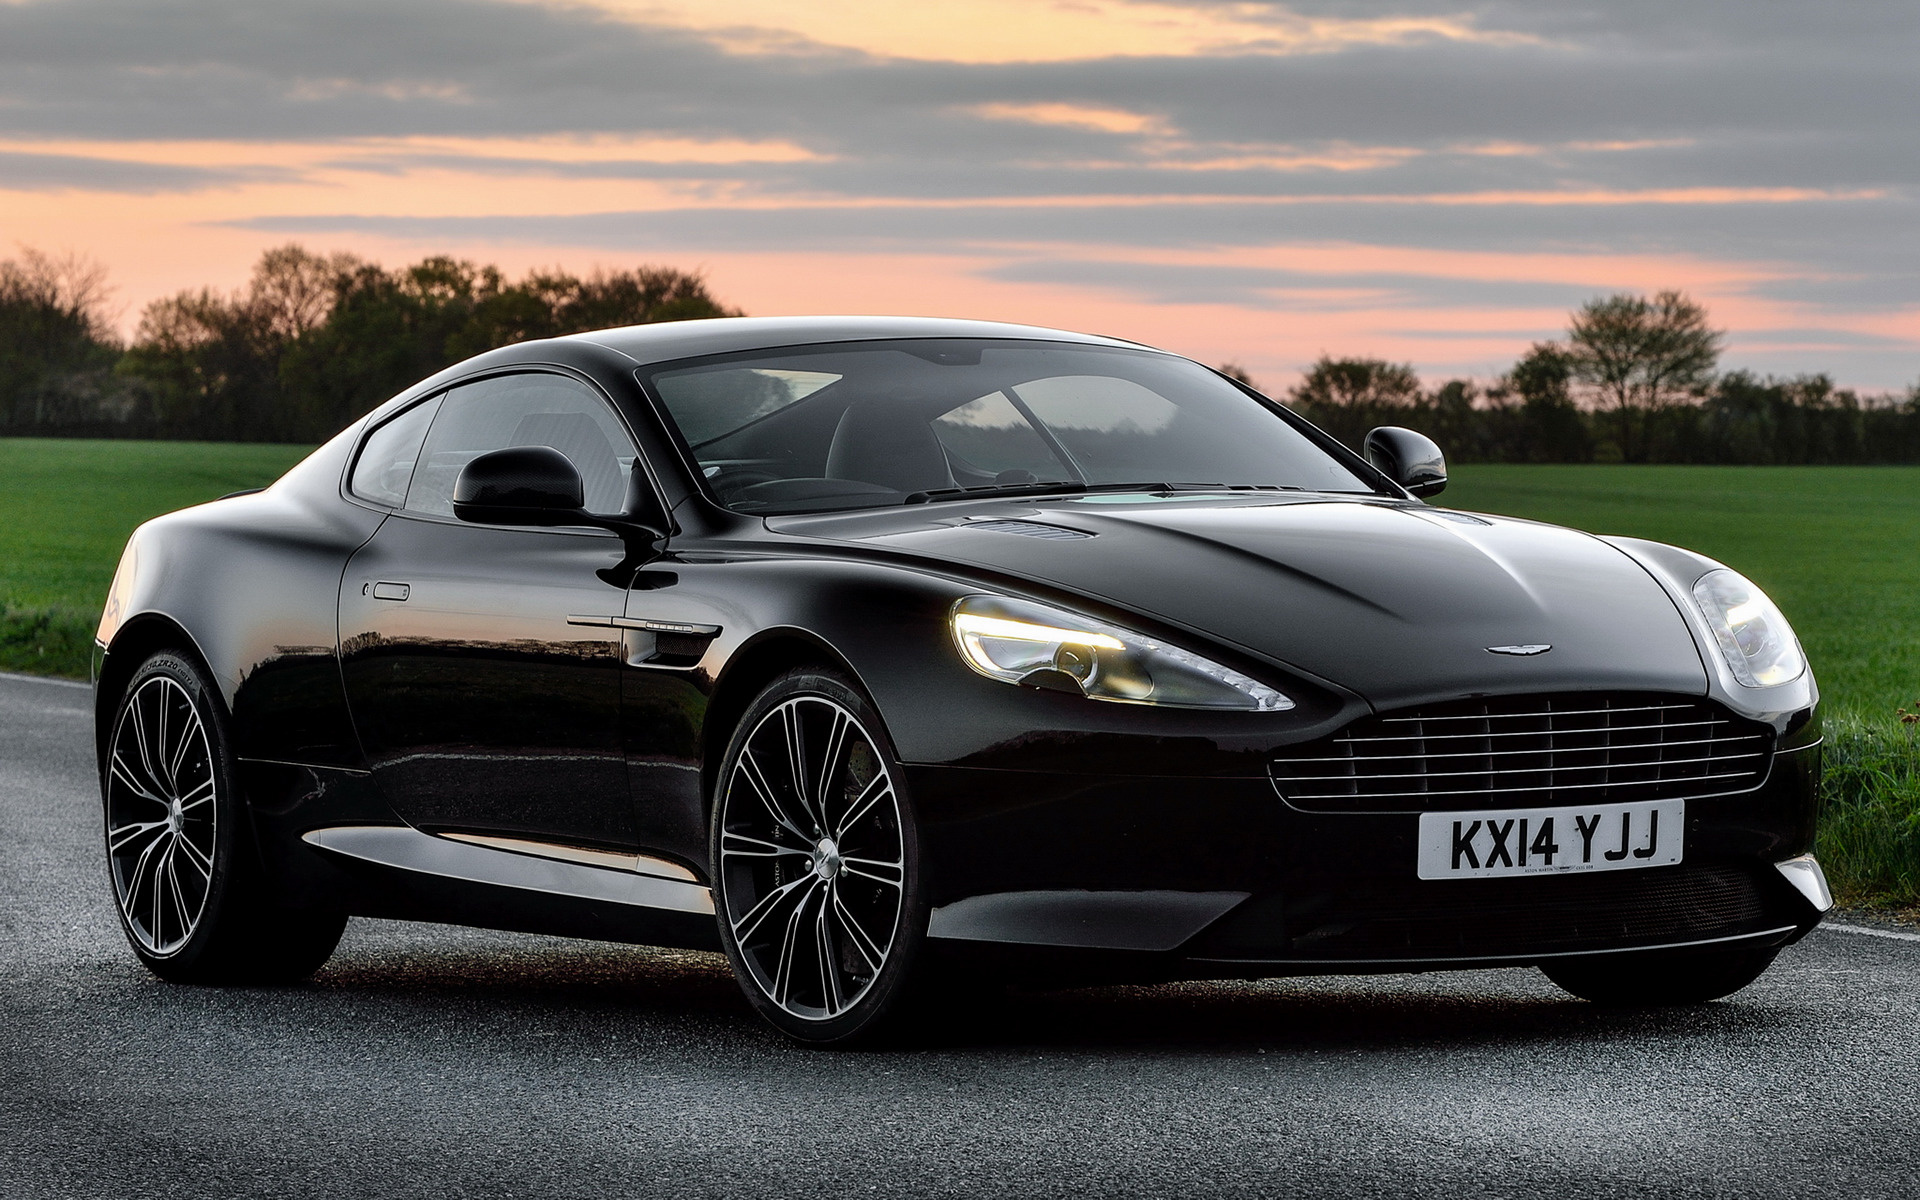 2014 aston martin db9 carbon black (uk) - wallpapers and hd images